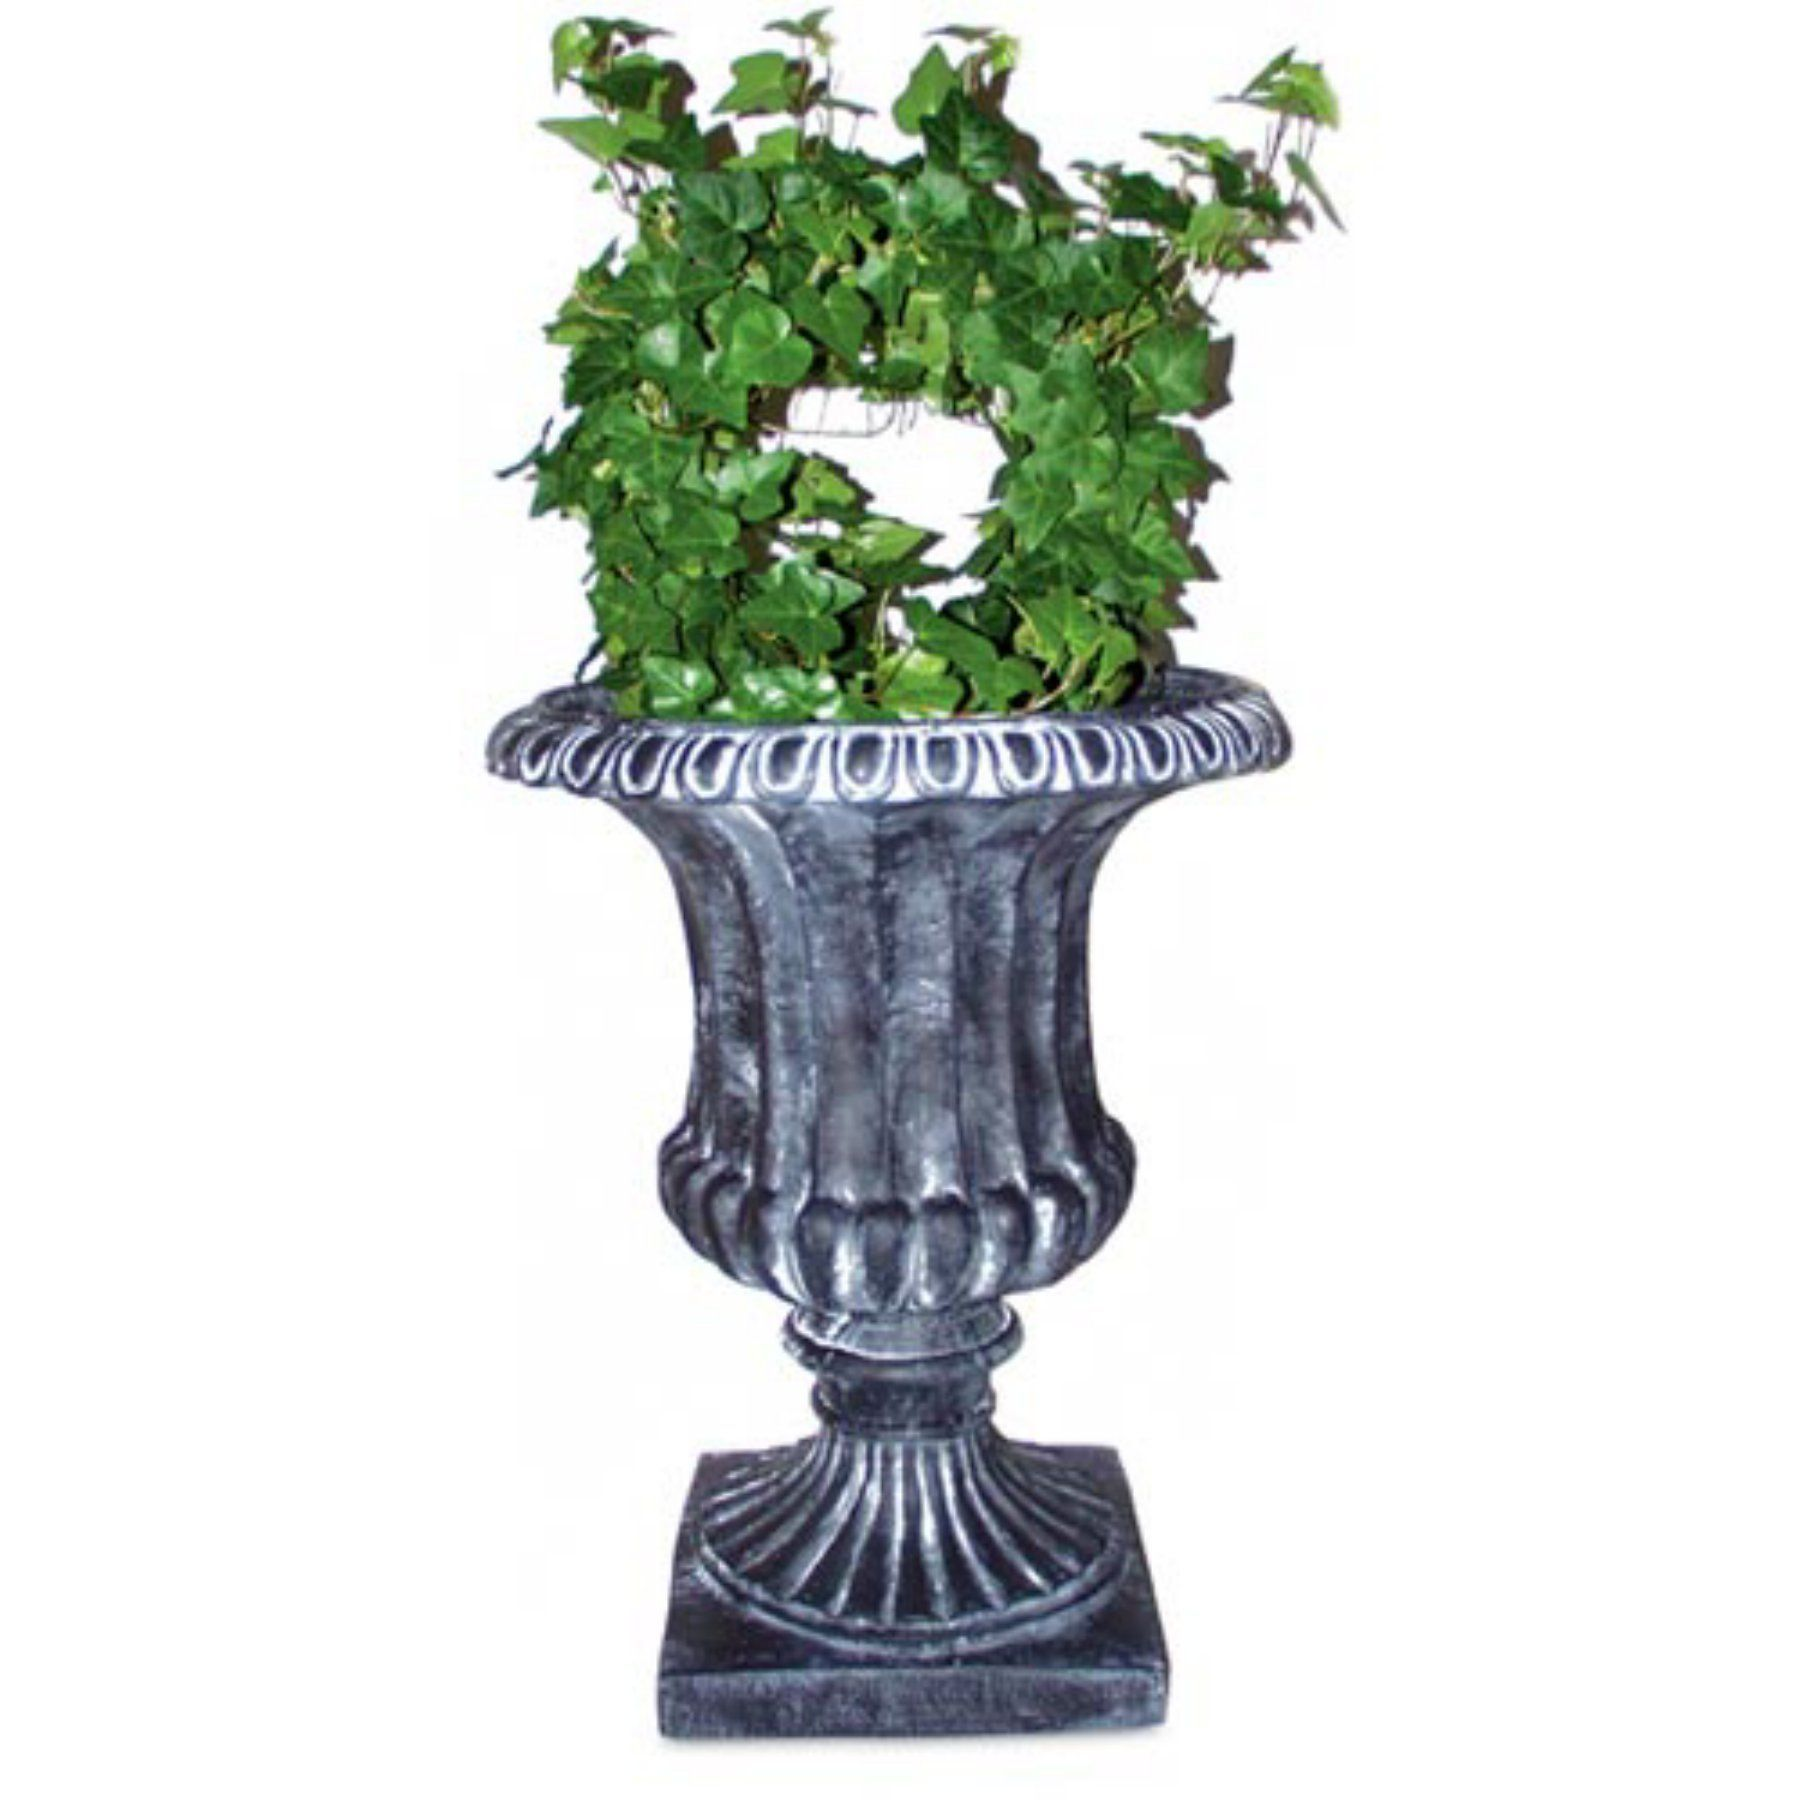 planting depot planters your urn clearance engaging for planter outdoor intended home inspiration amazon